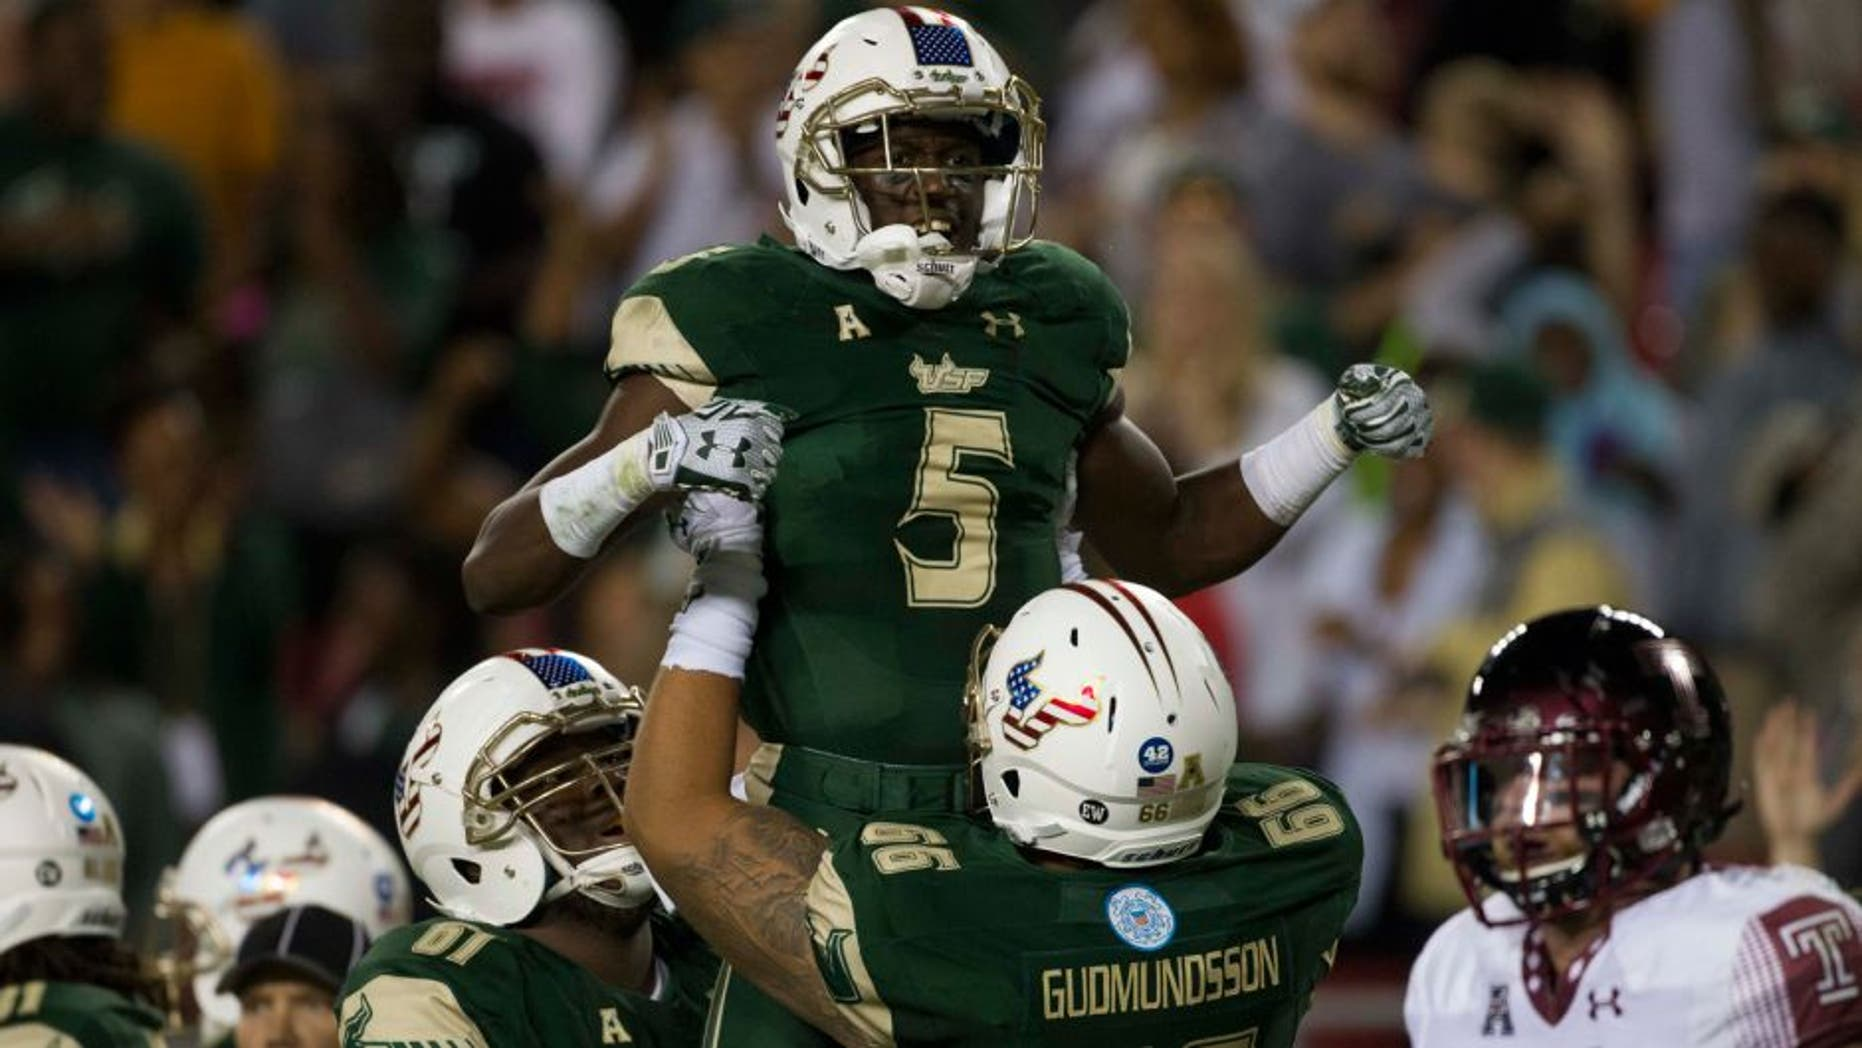 Nov 14, 2015; Tampa, FL, USA; South Florida Bulls running back Marlon Mack (5) celebrates with offensive lineman Dominique Threatt (61) and offensive lineman Brynjar Gudmundsson (66) after scoring a touchdown in the second quarter against the Temple Owls at Raymond James Stadium. Mandatory Credit: Logan Bowles-USA TODAY Sports